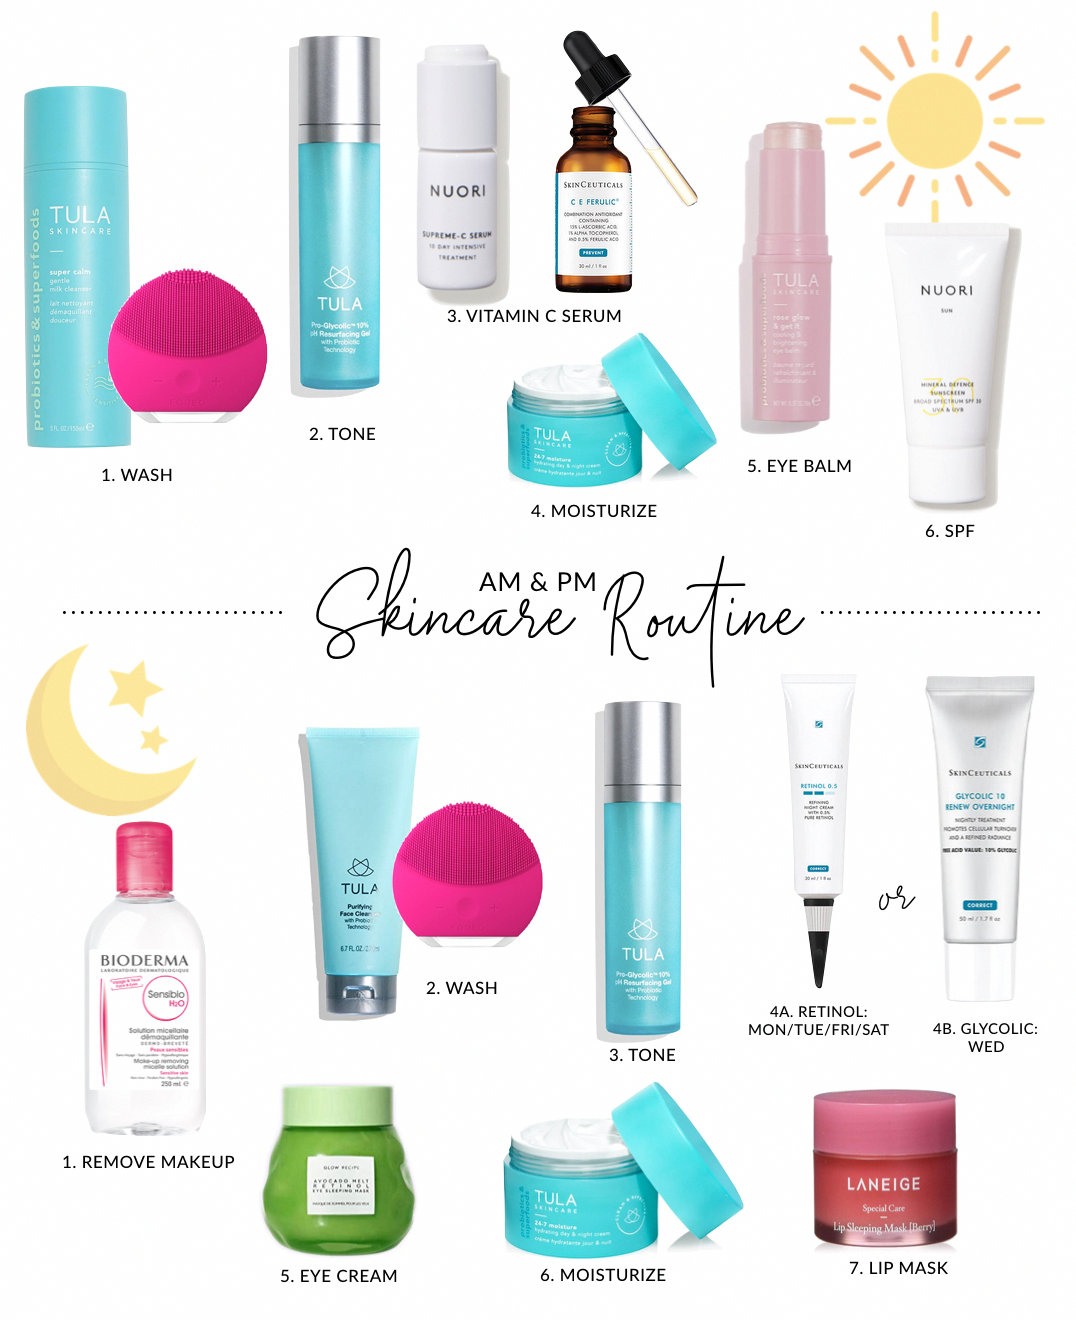 Order To Apply Skin Care Products My Morning Night Routine Skincareroutin A In 2020 Skin Care Routine Order Night Skin Care Routine Skin Care Routine Steps